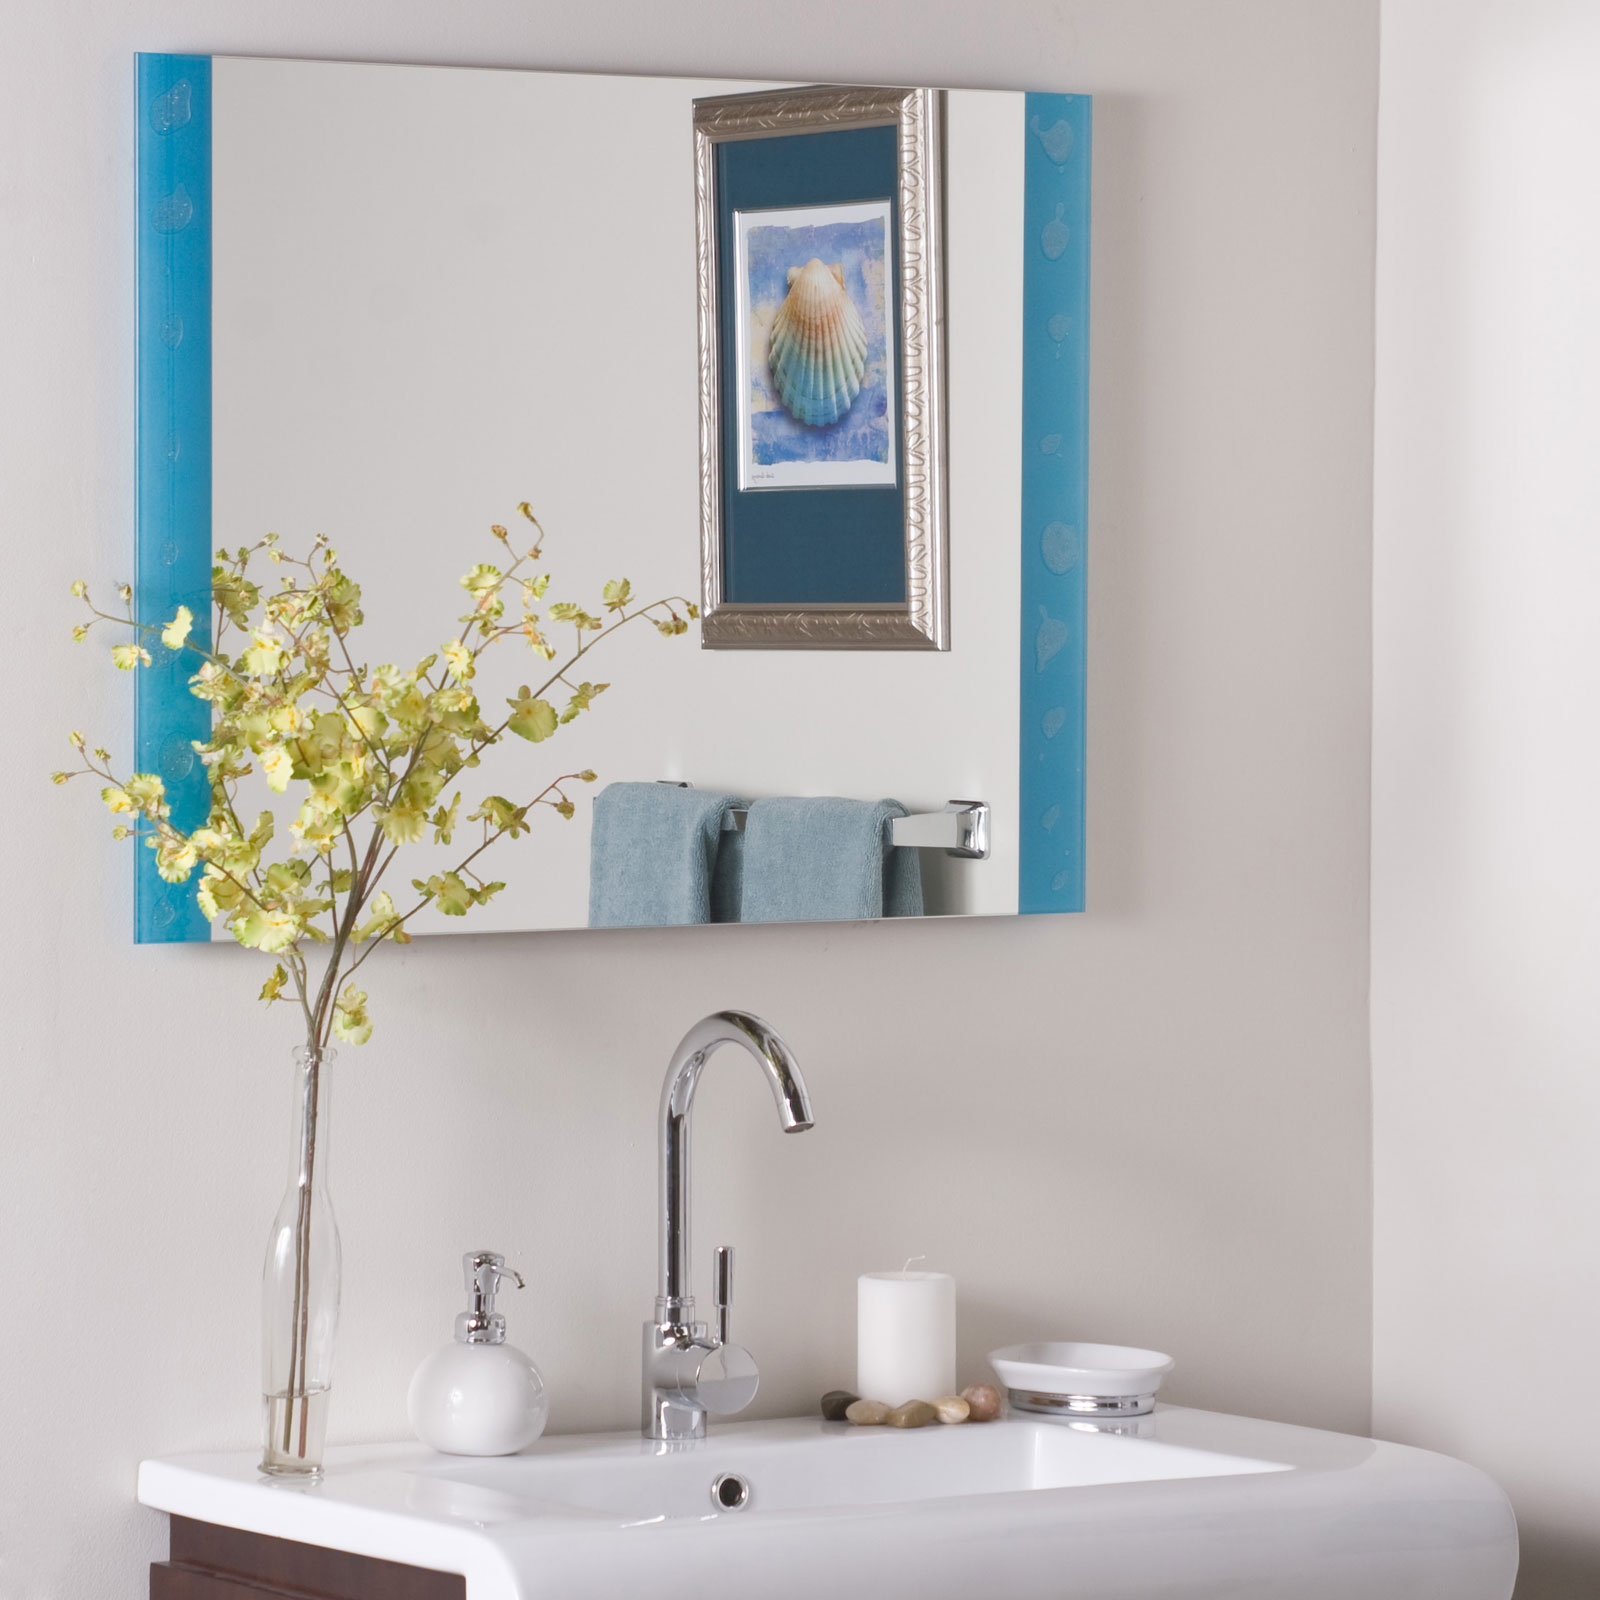 The spa frameless bathroom mirror by decor wonderland in for Bathroom mirror design